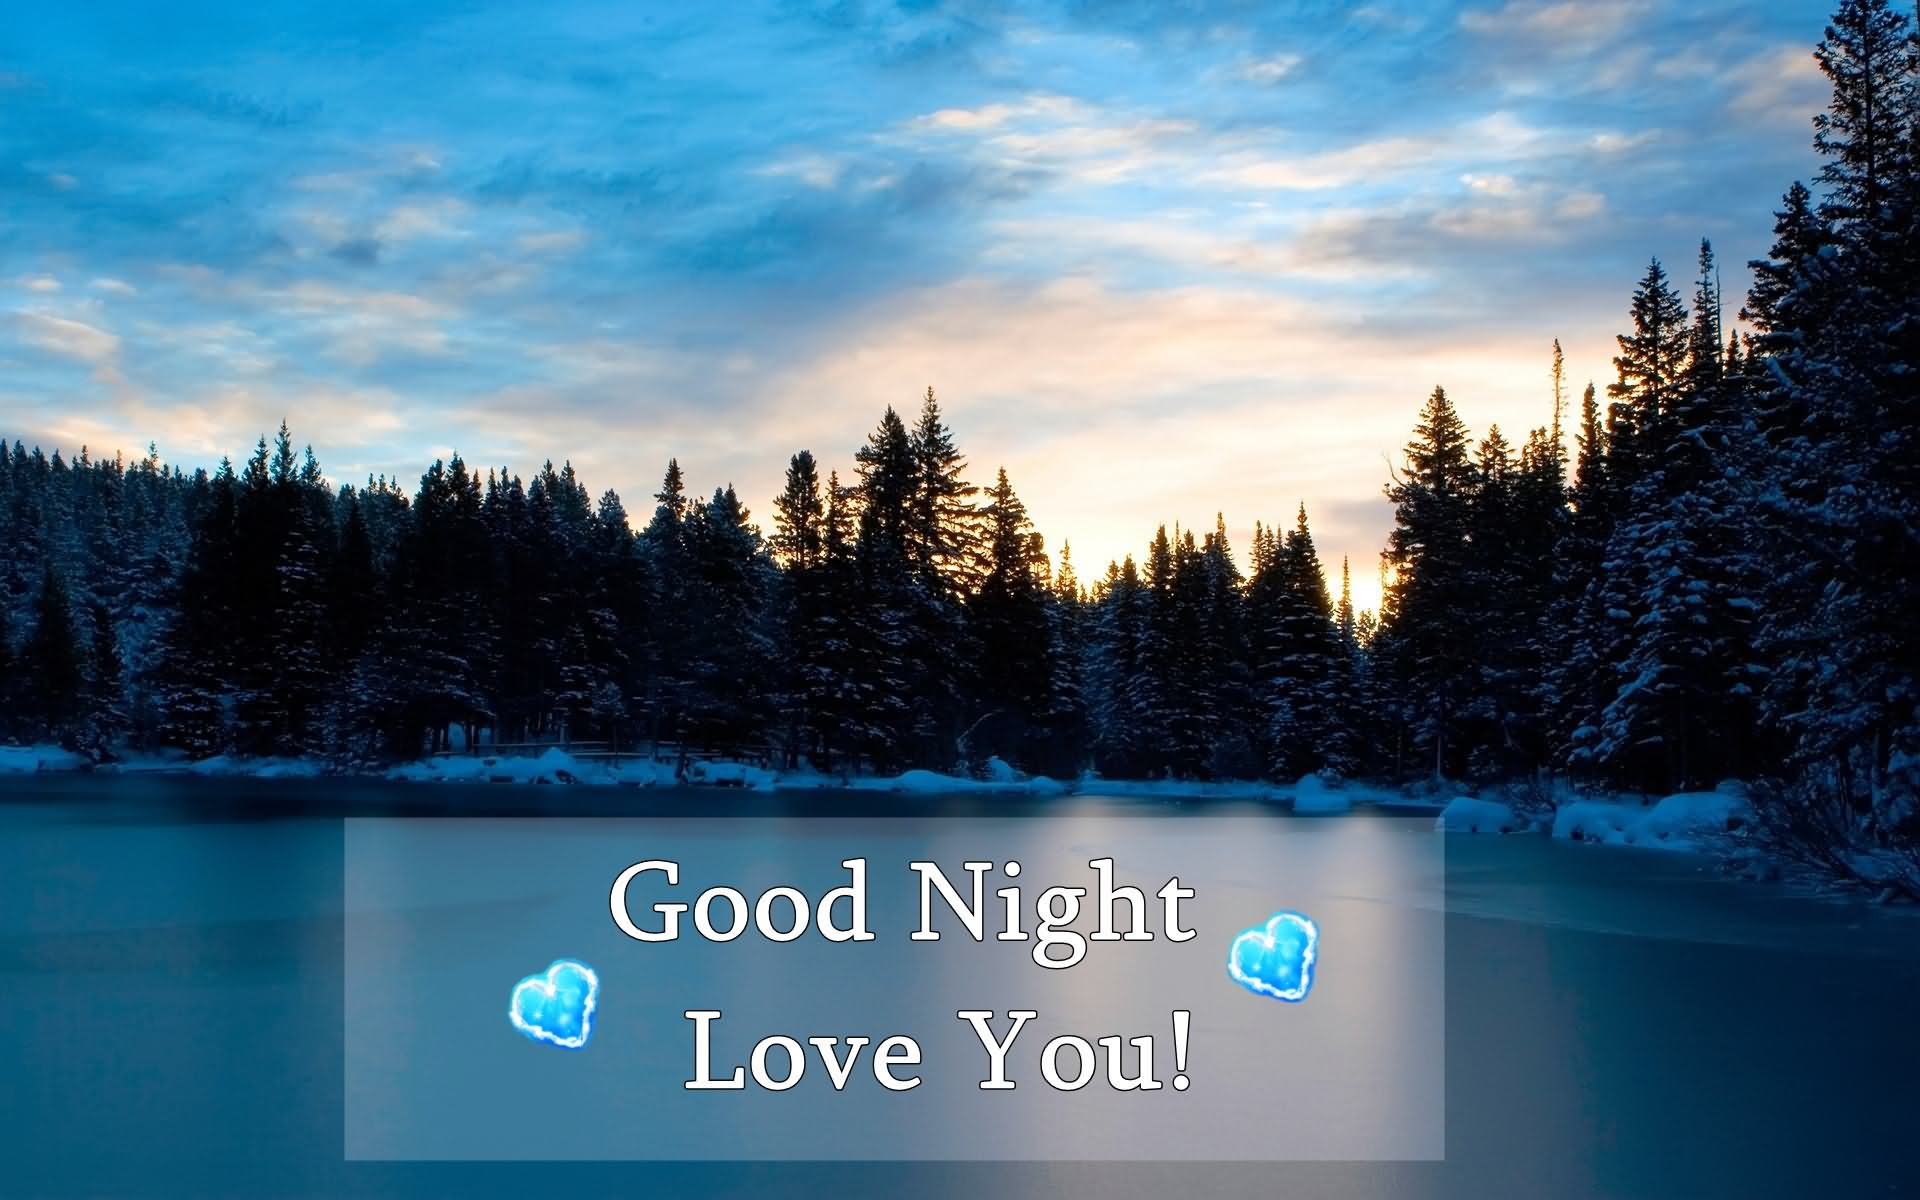 Love Wallpaper Of Good Night : 15 Awesome Good Night Love Images